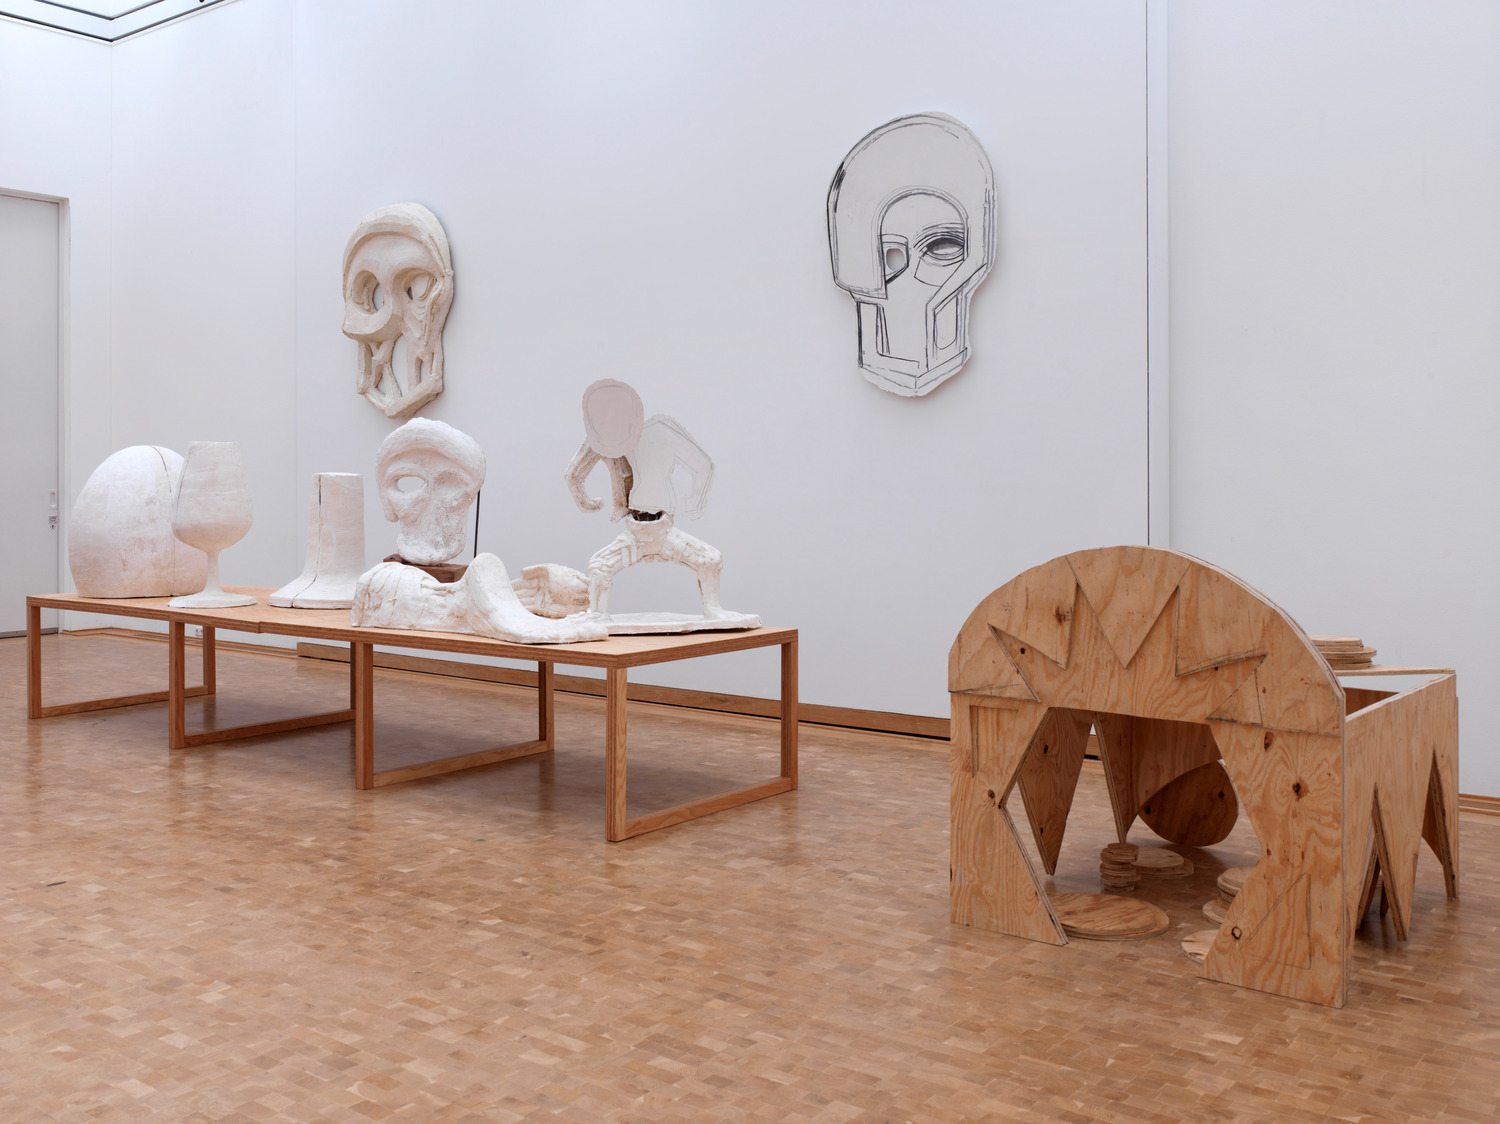 Installation view 'What Went Down', Museum Abteiberg, Moenchengladbach, 2011